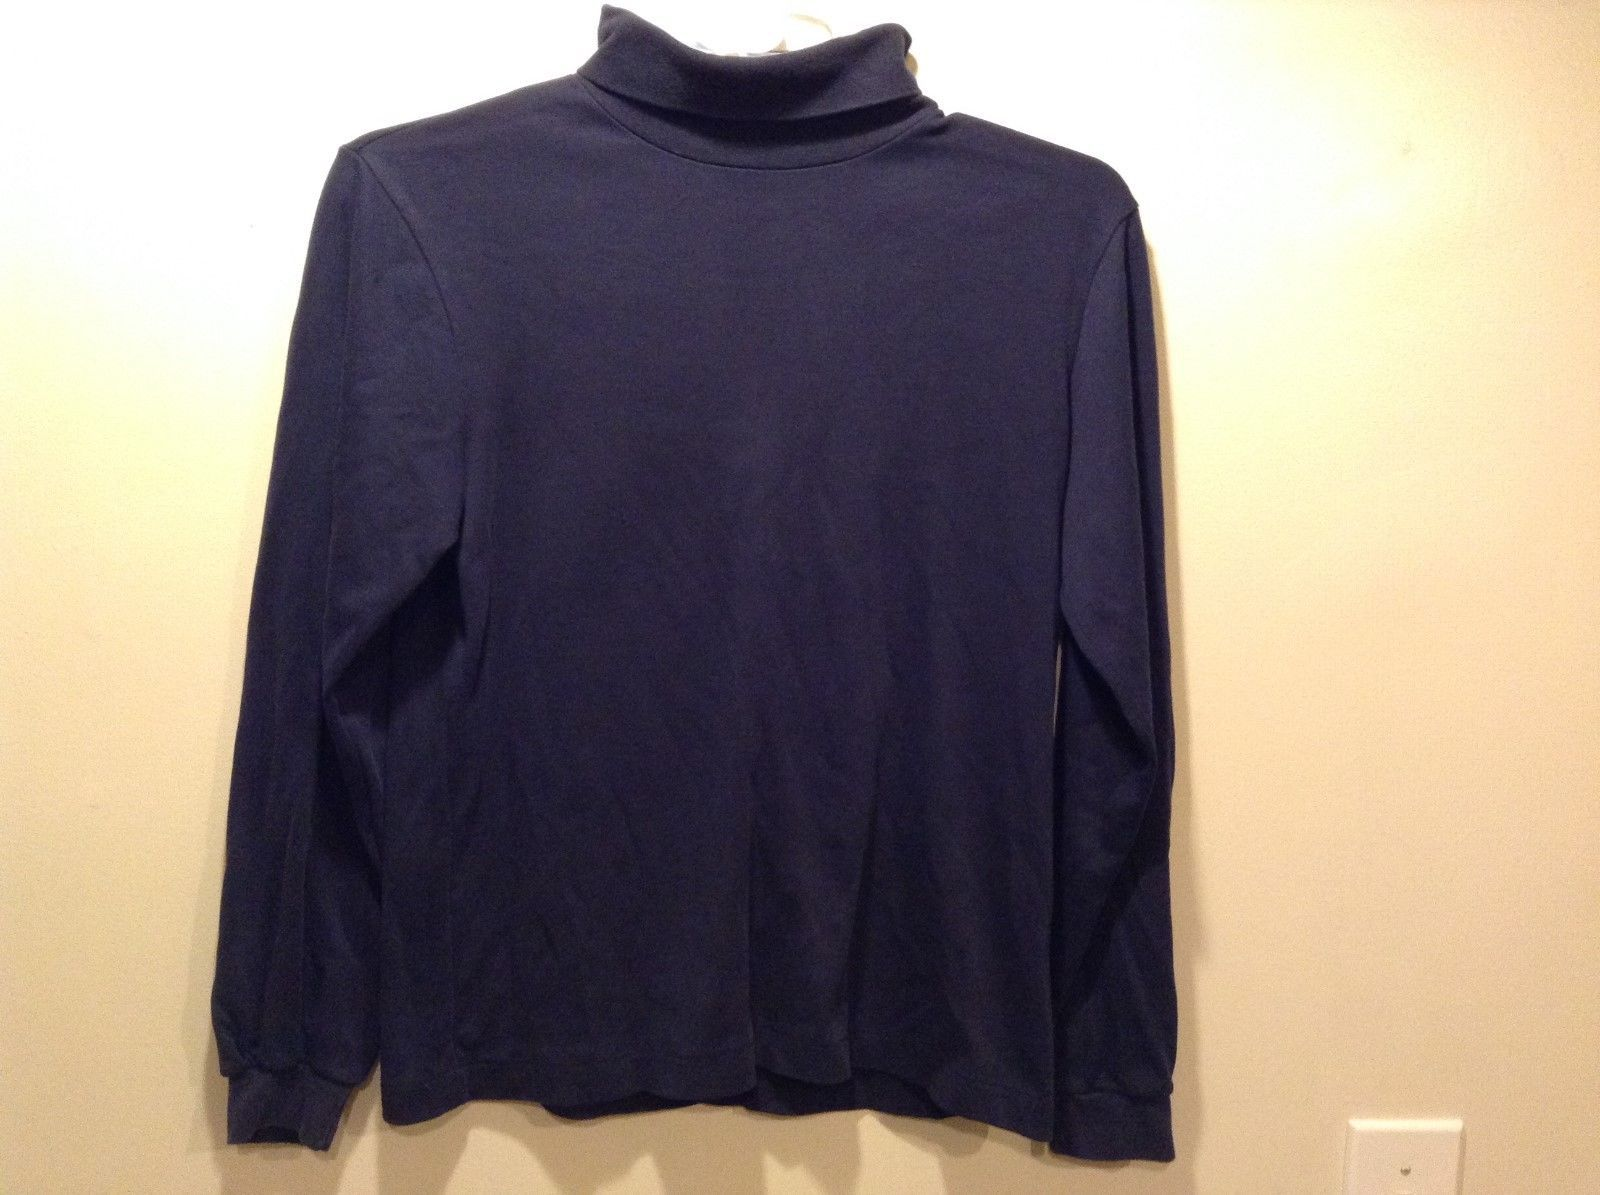 Lands' End Ladies Navy Blue Turtleneck Sz 10-12